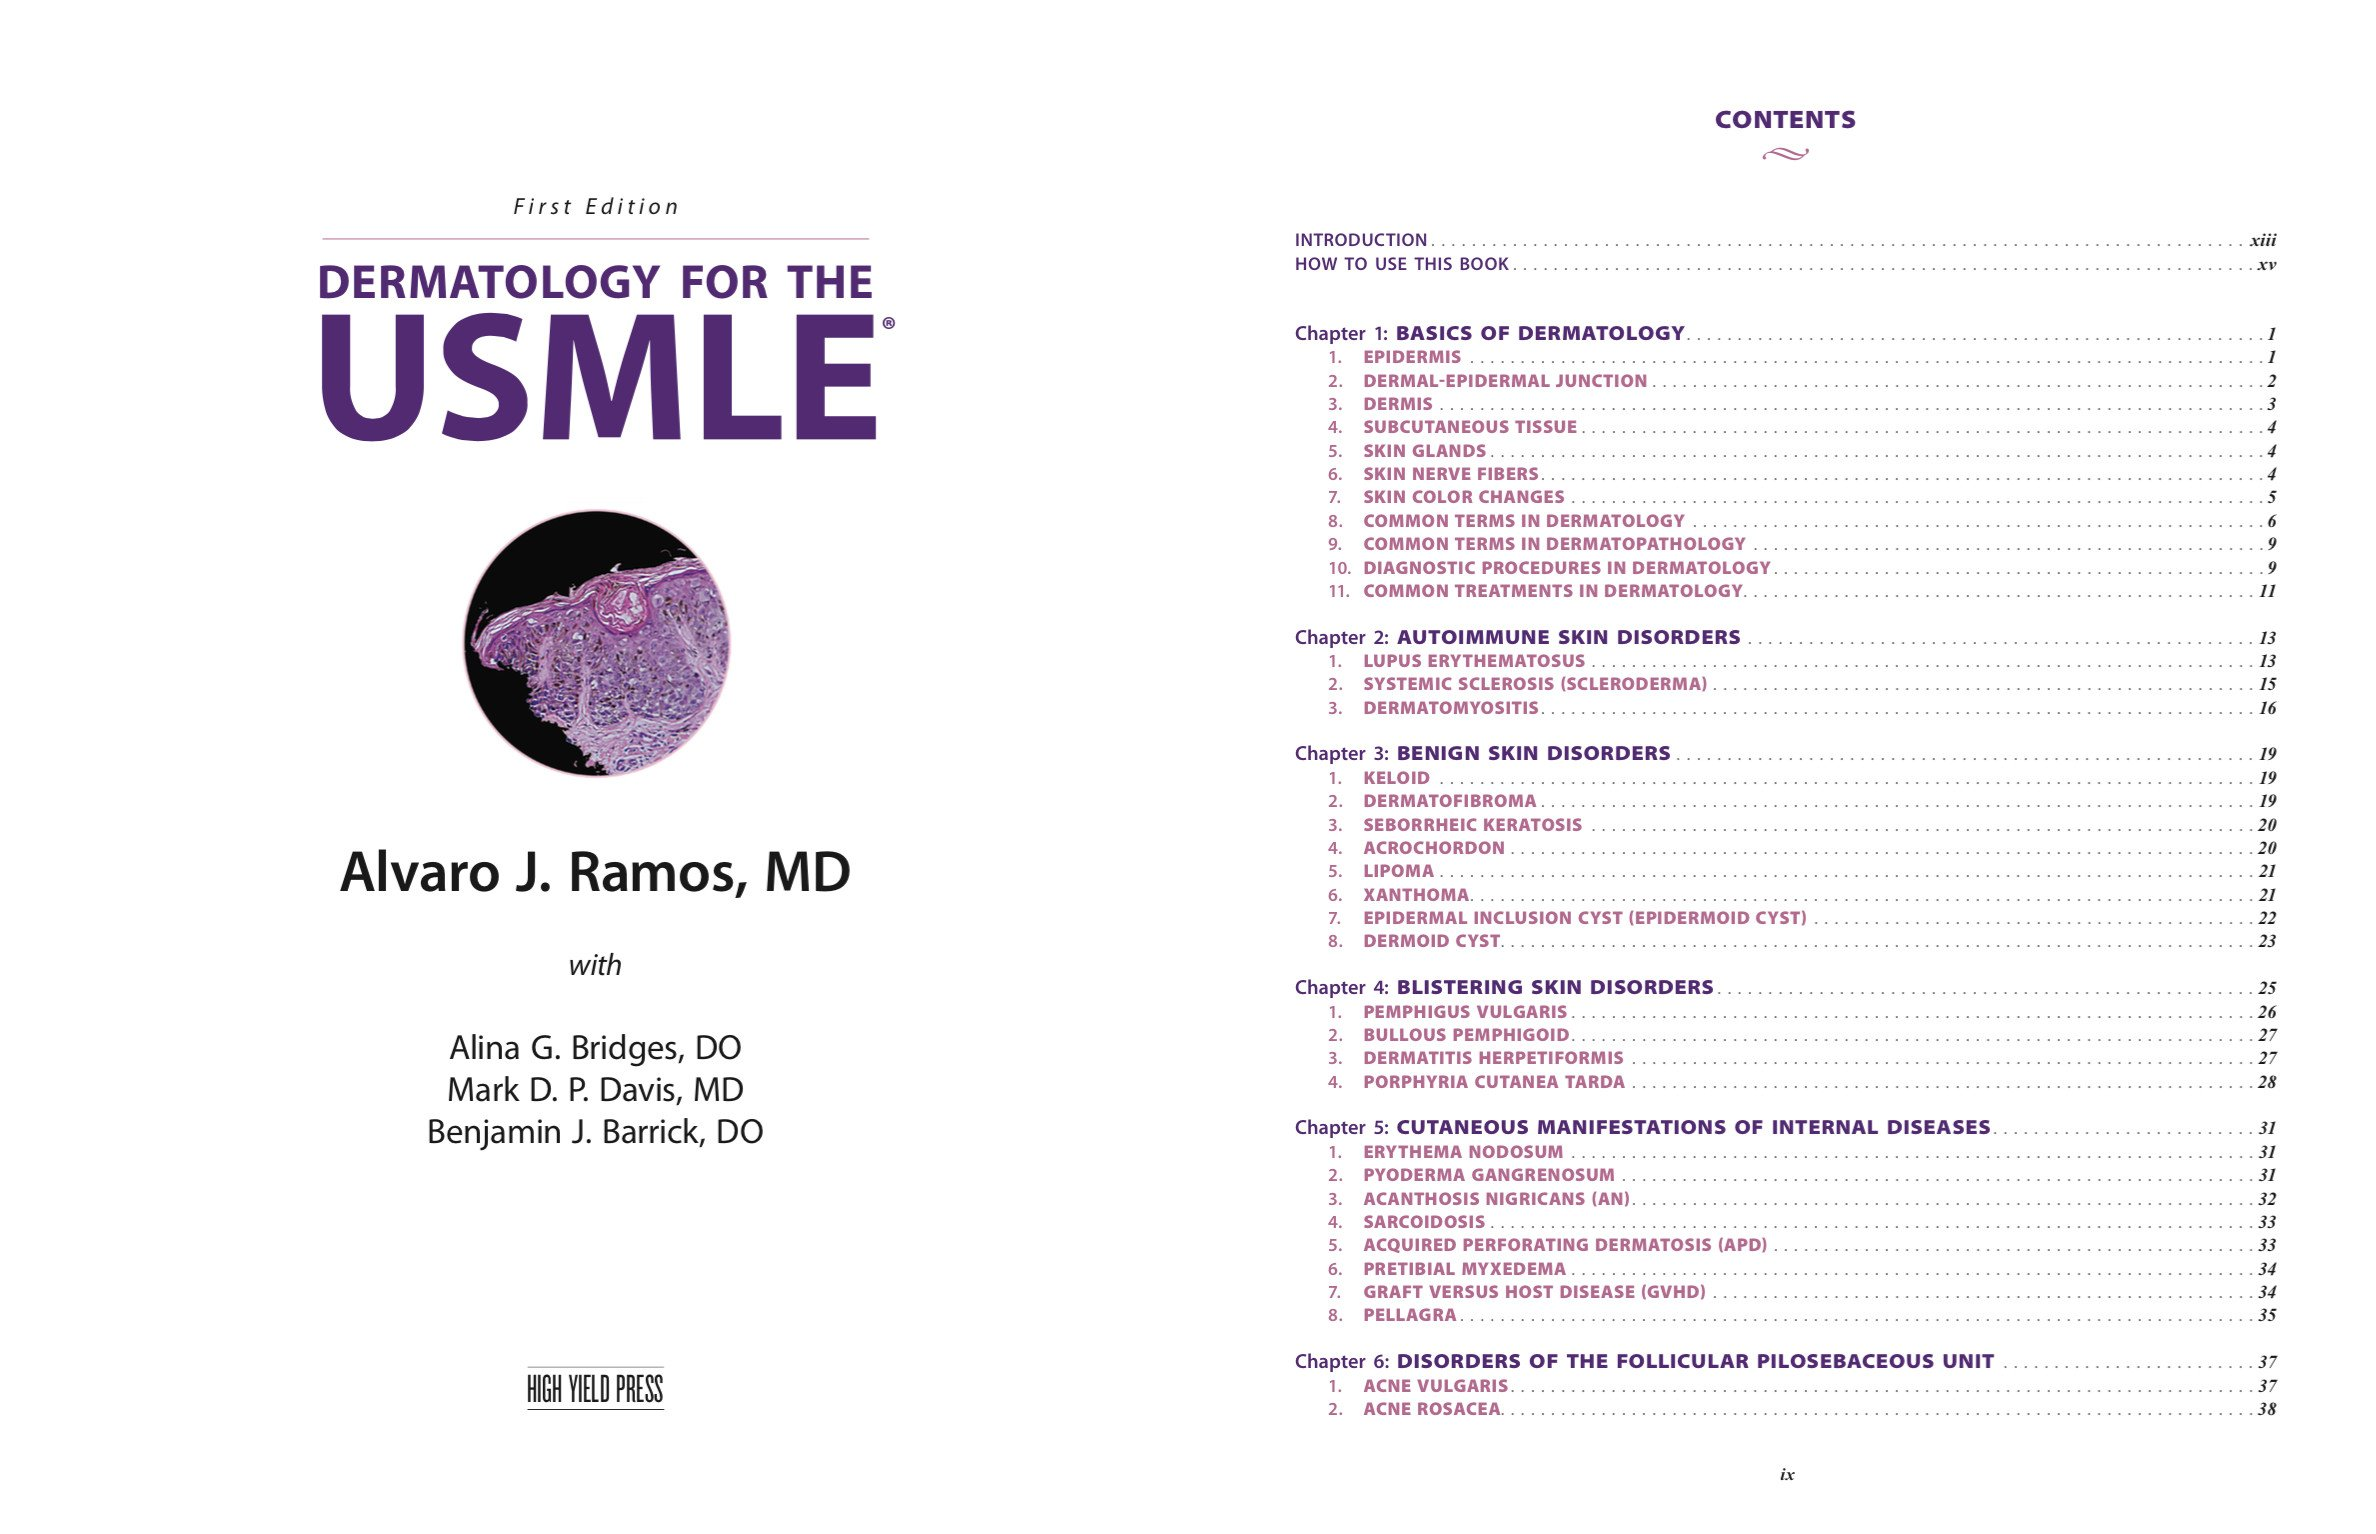 Dermatology For The Usmle Alvaro J Ramos Md 9780692525296